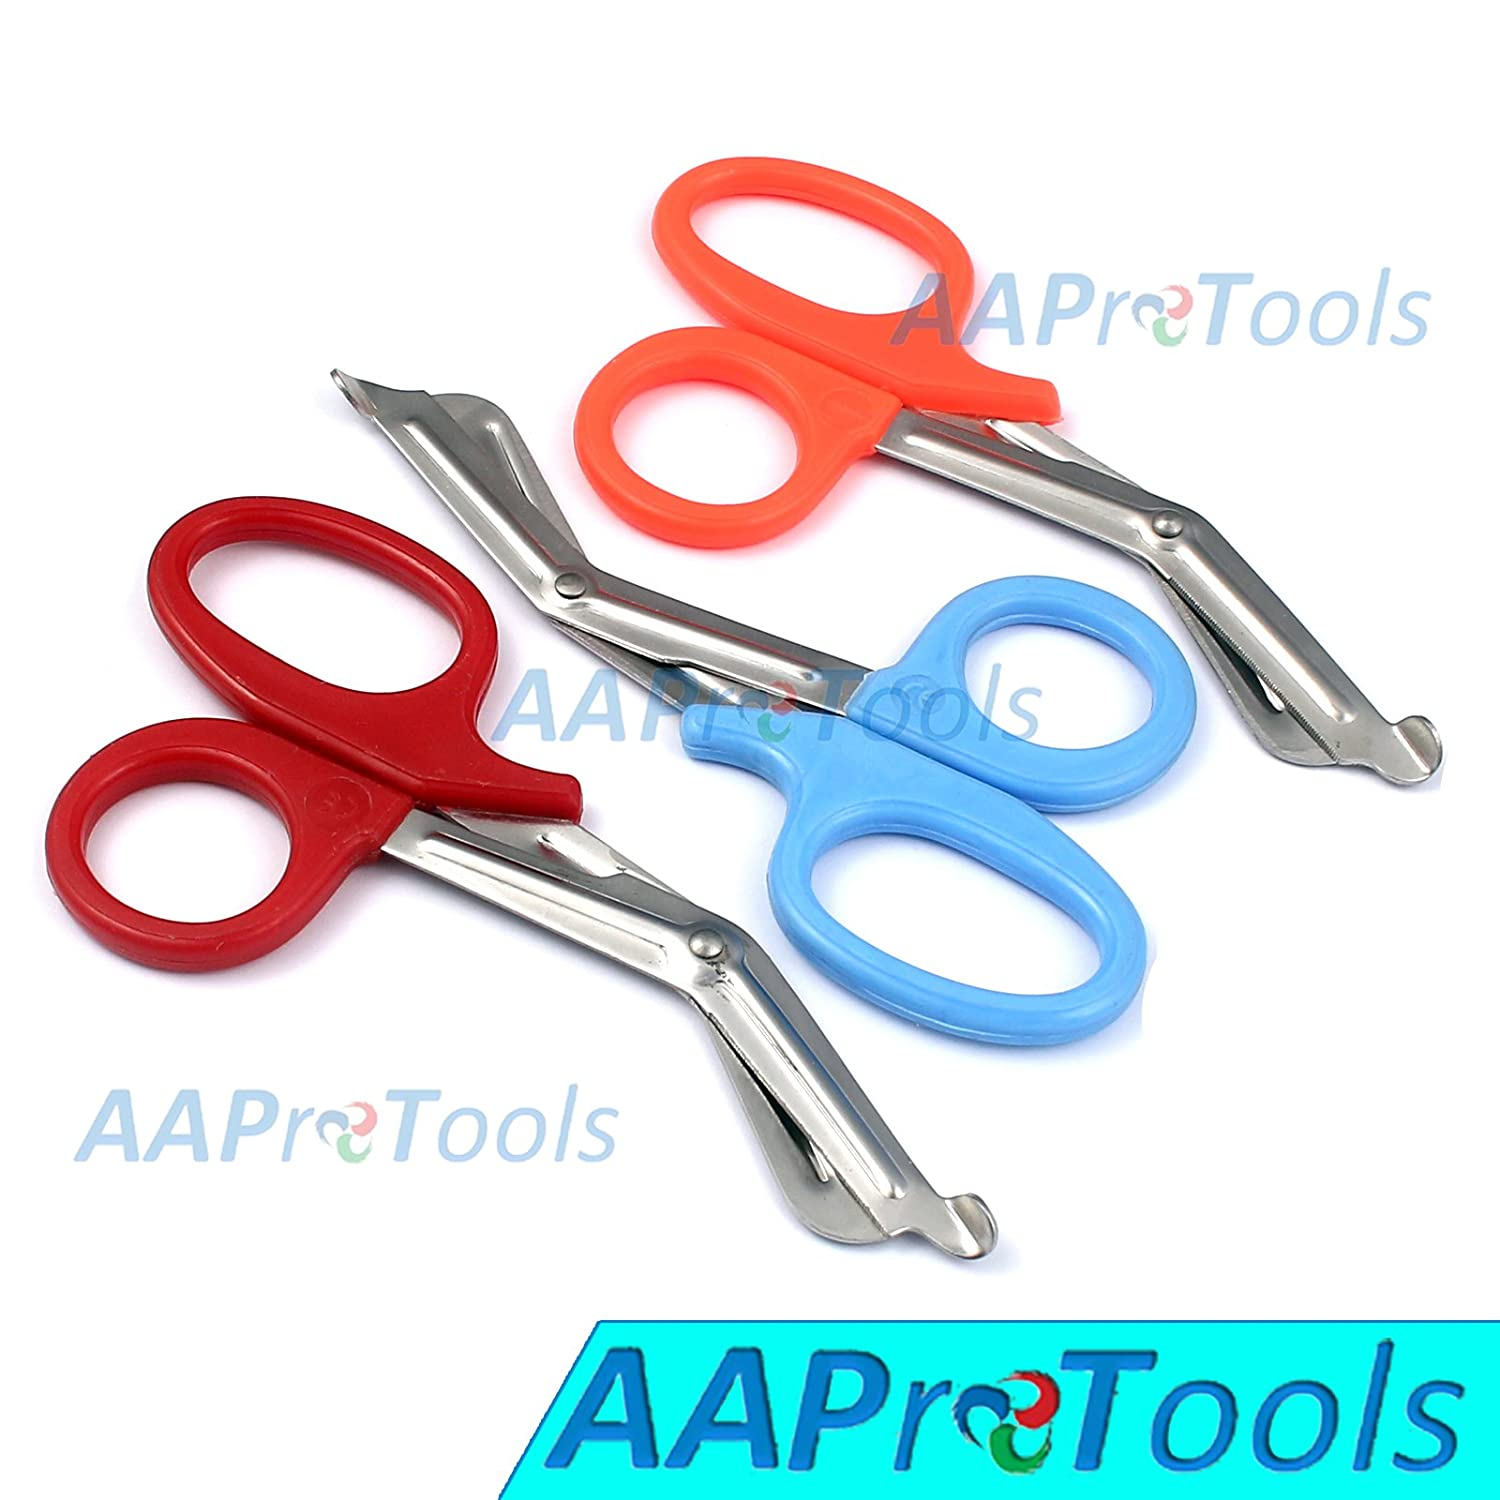 "AAPROTOOLS SET OF 3 ( ORANGE SKY BLUE RED ) TRAUMA PARAMEDIC EMT SHEARS SCISSORS 7.5"" A+ QUALITY"